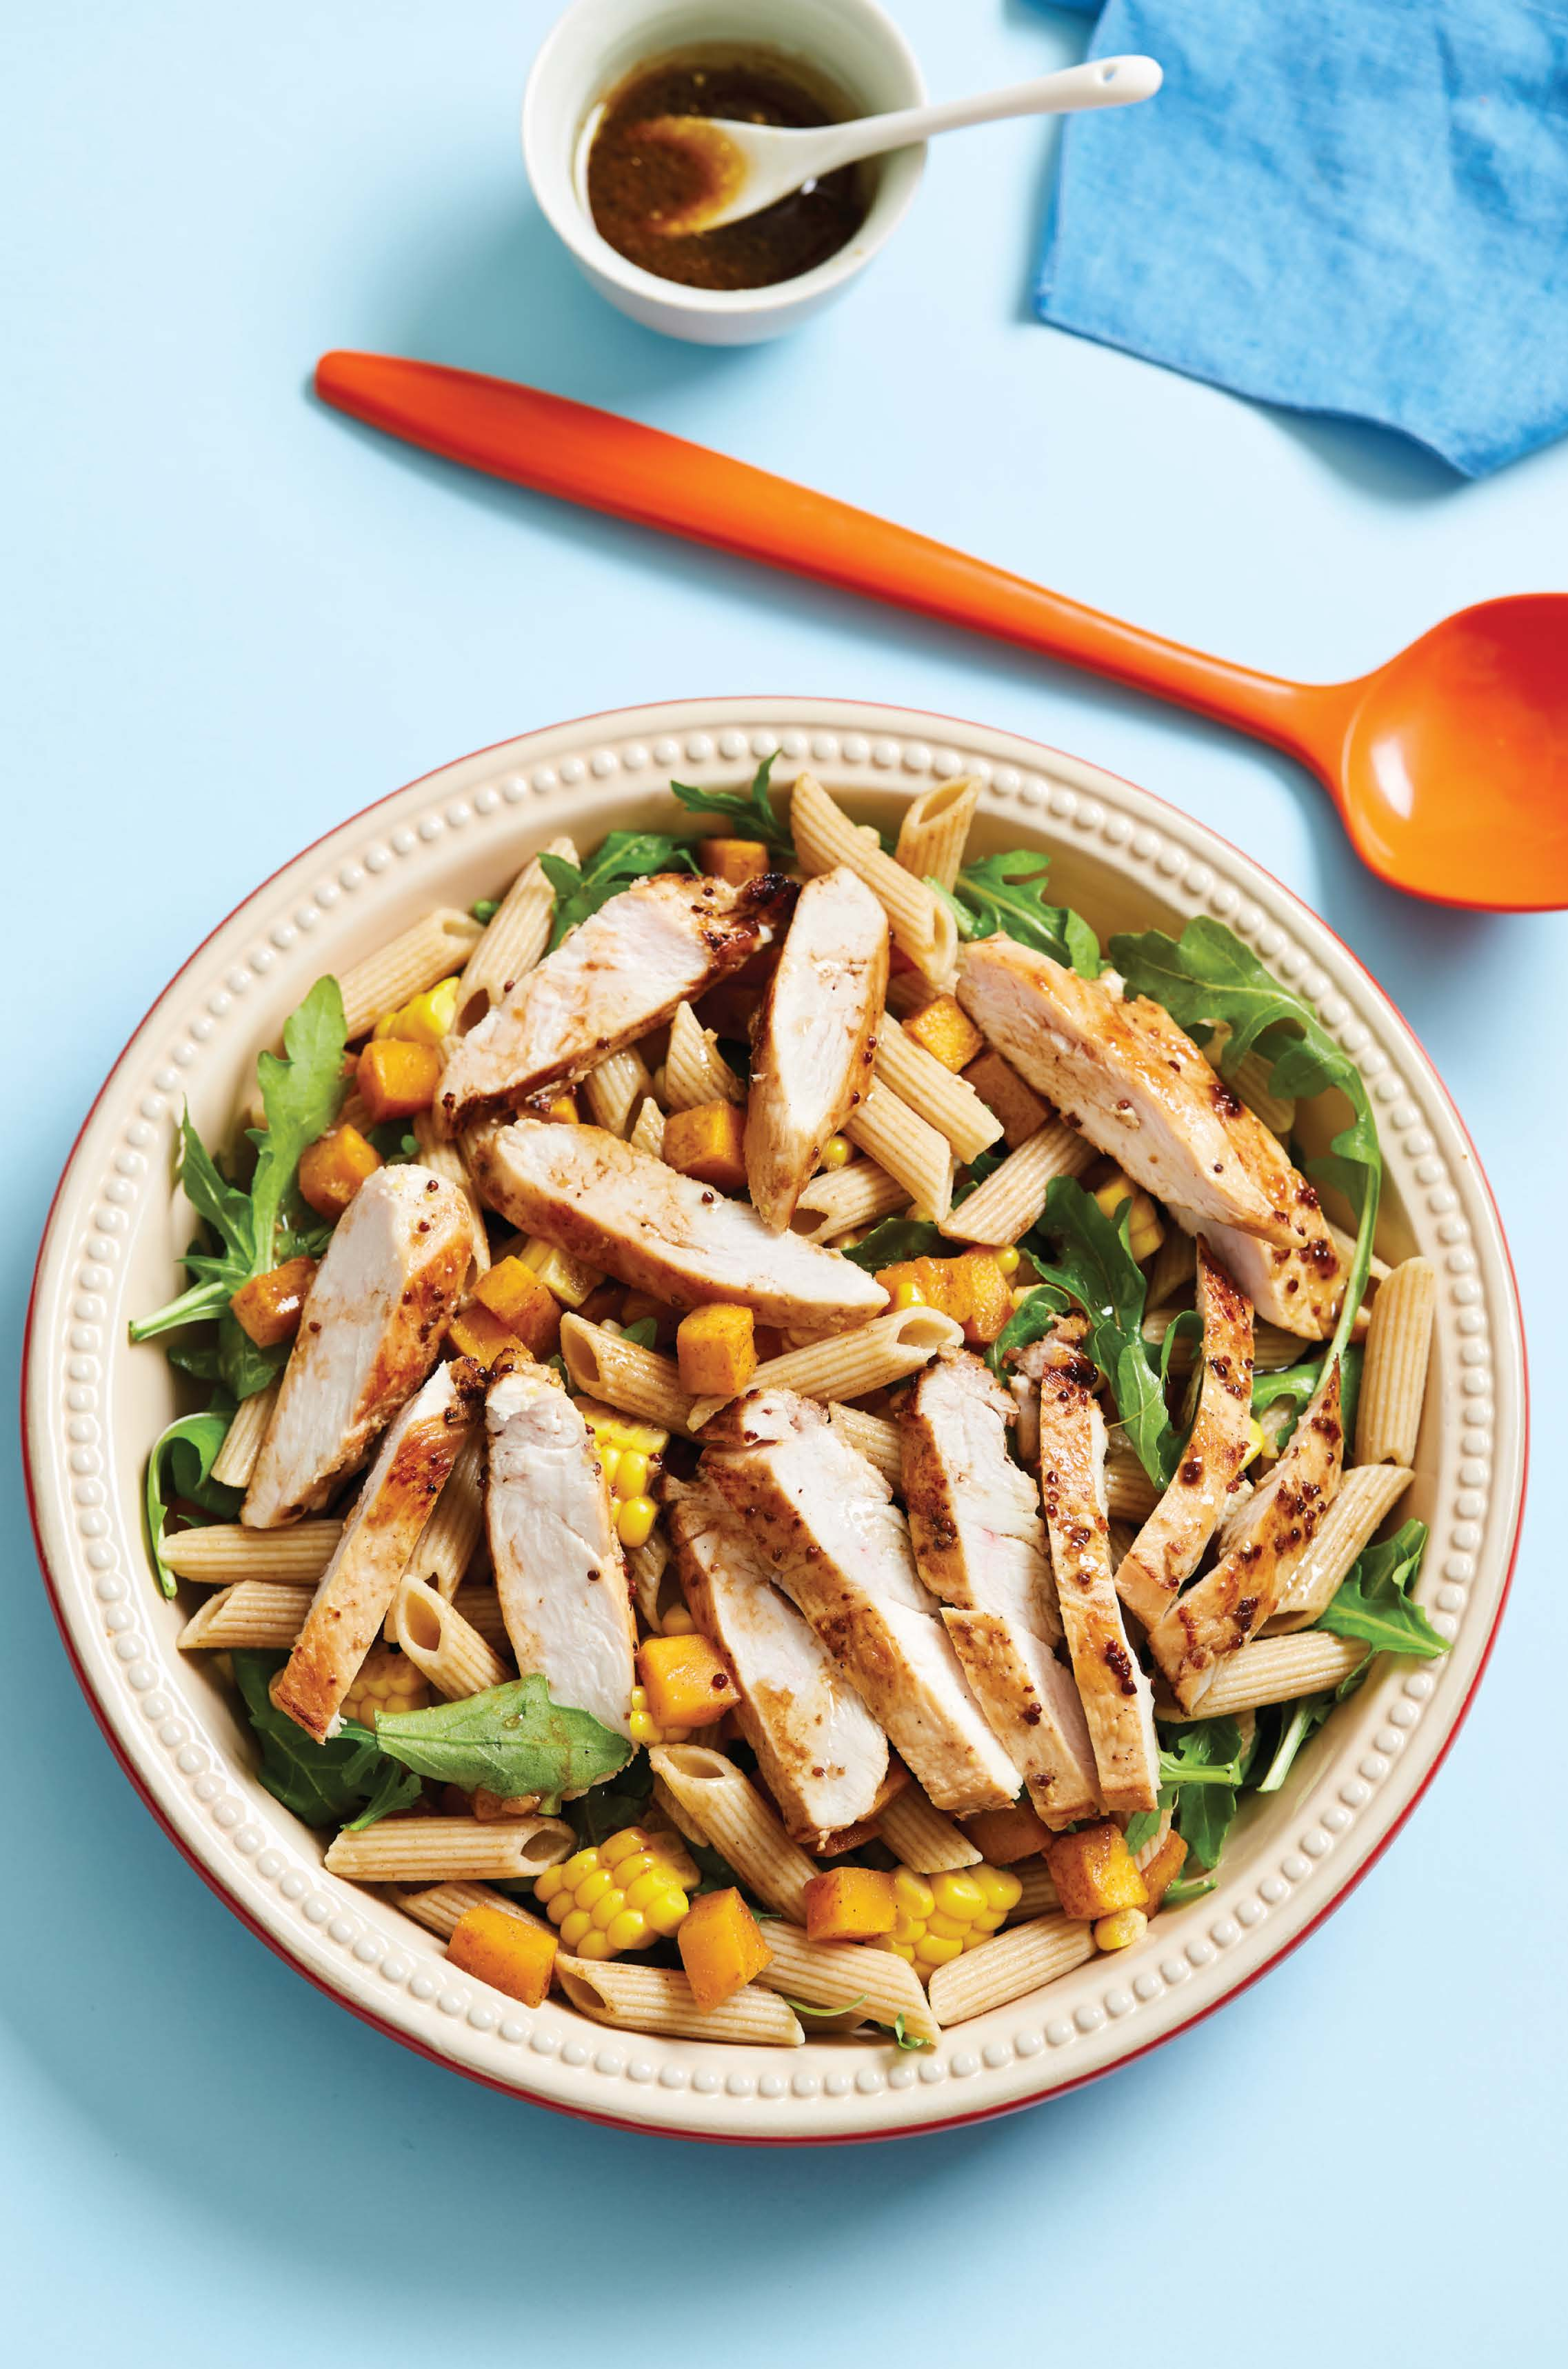 Maple-roasted pumpkin, chicken and pasta salad